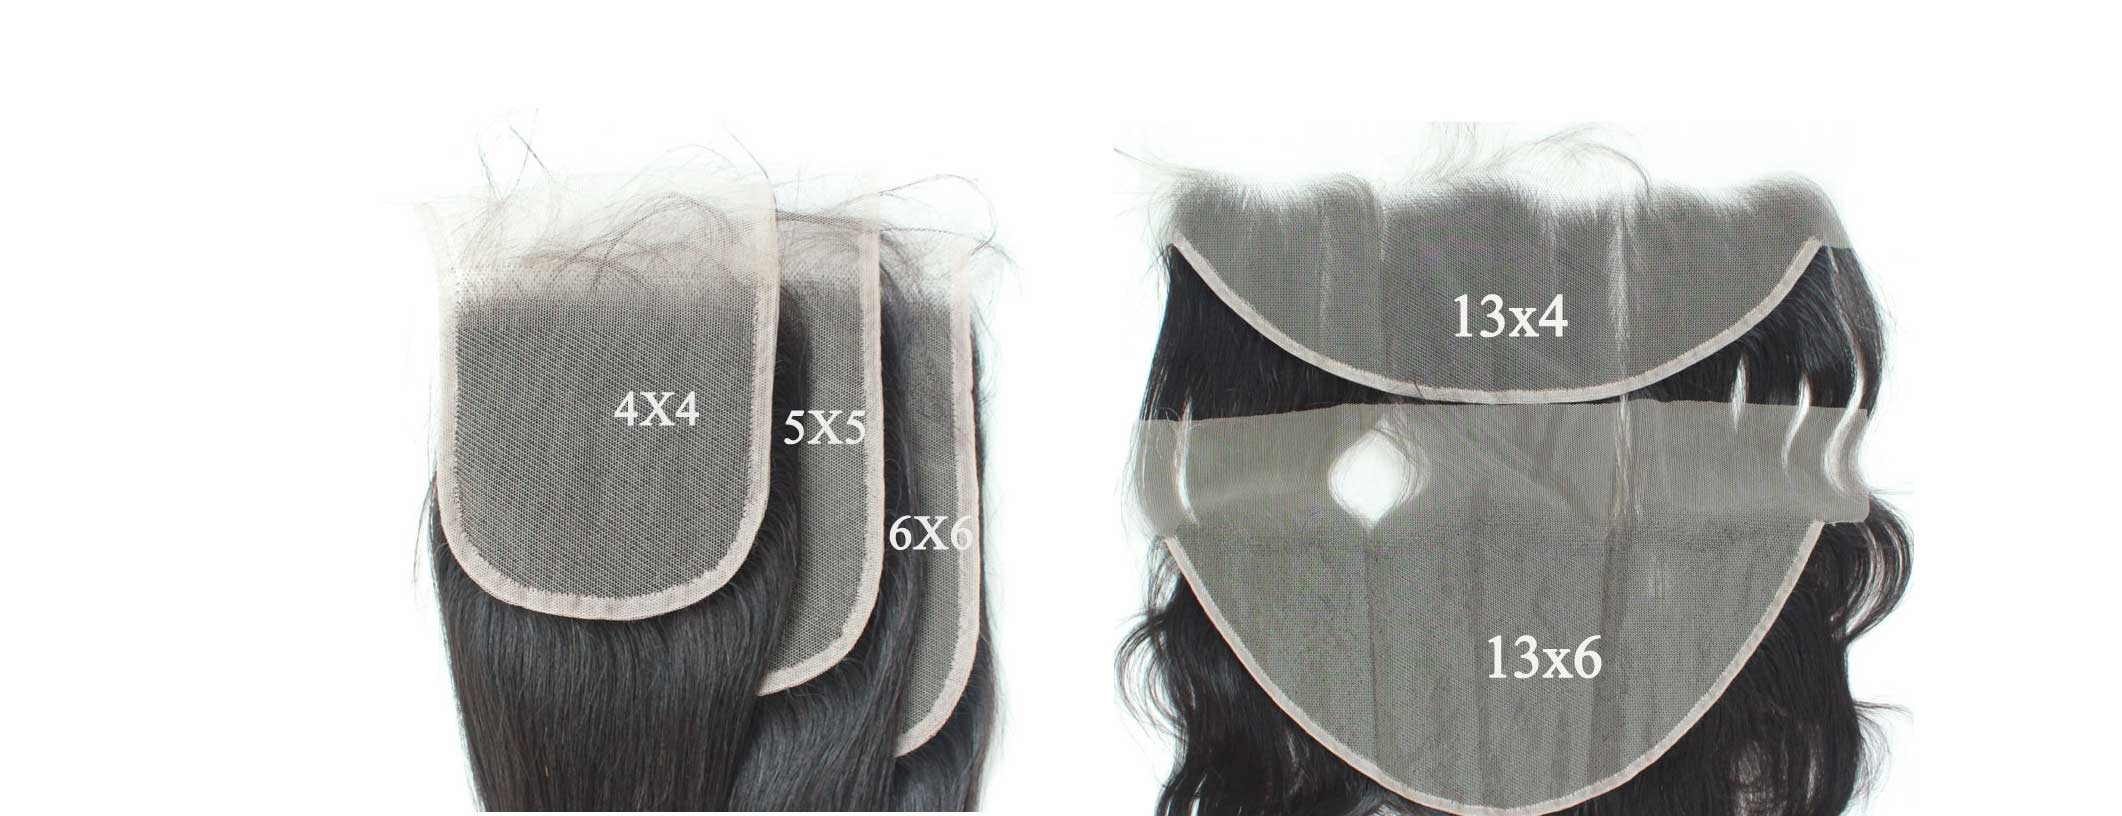 New Arrival : HD Lace Closure 4X4 5X5 66 13X4 13X6 and 2X6